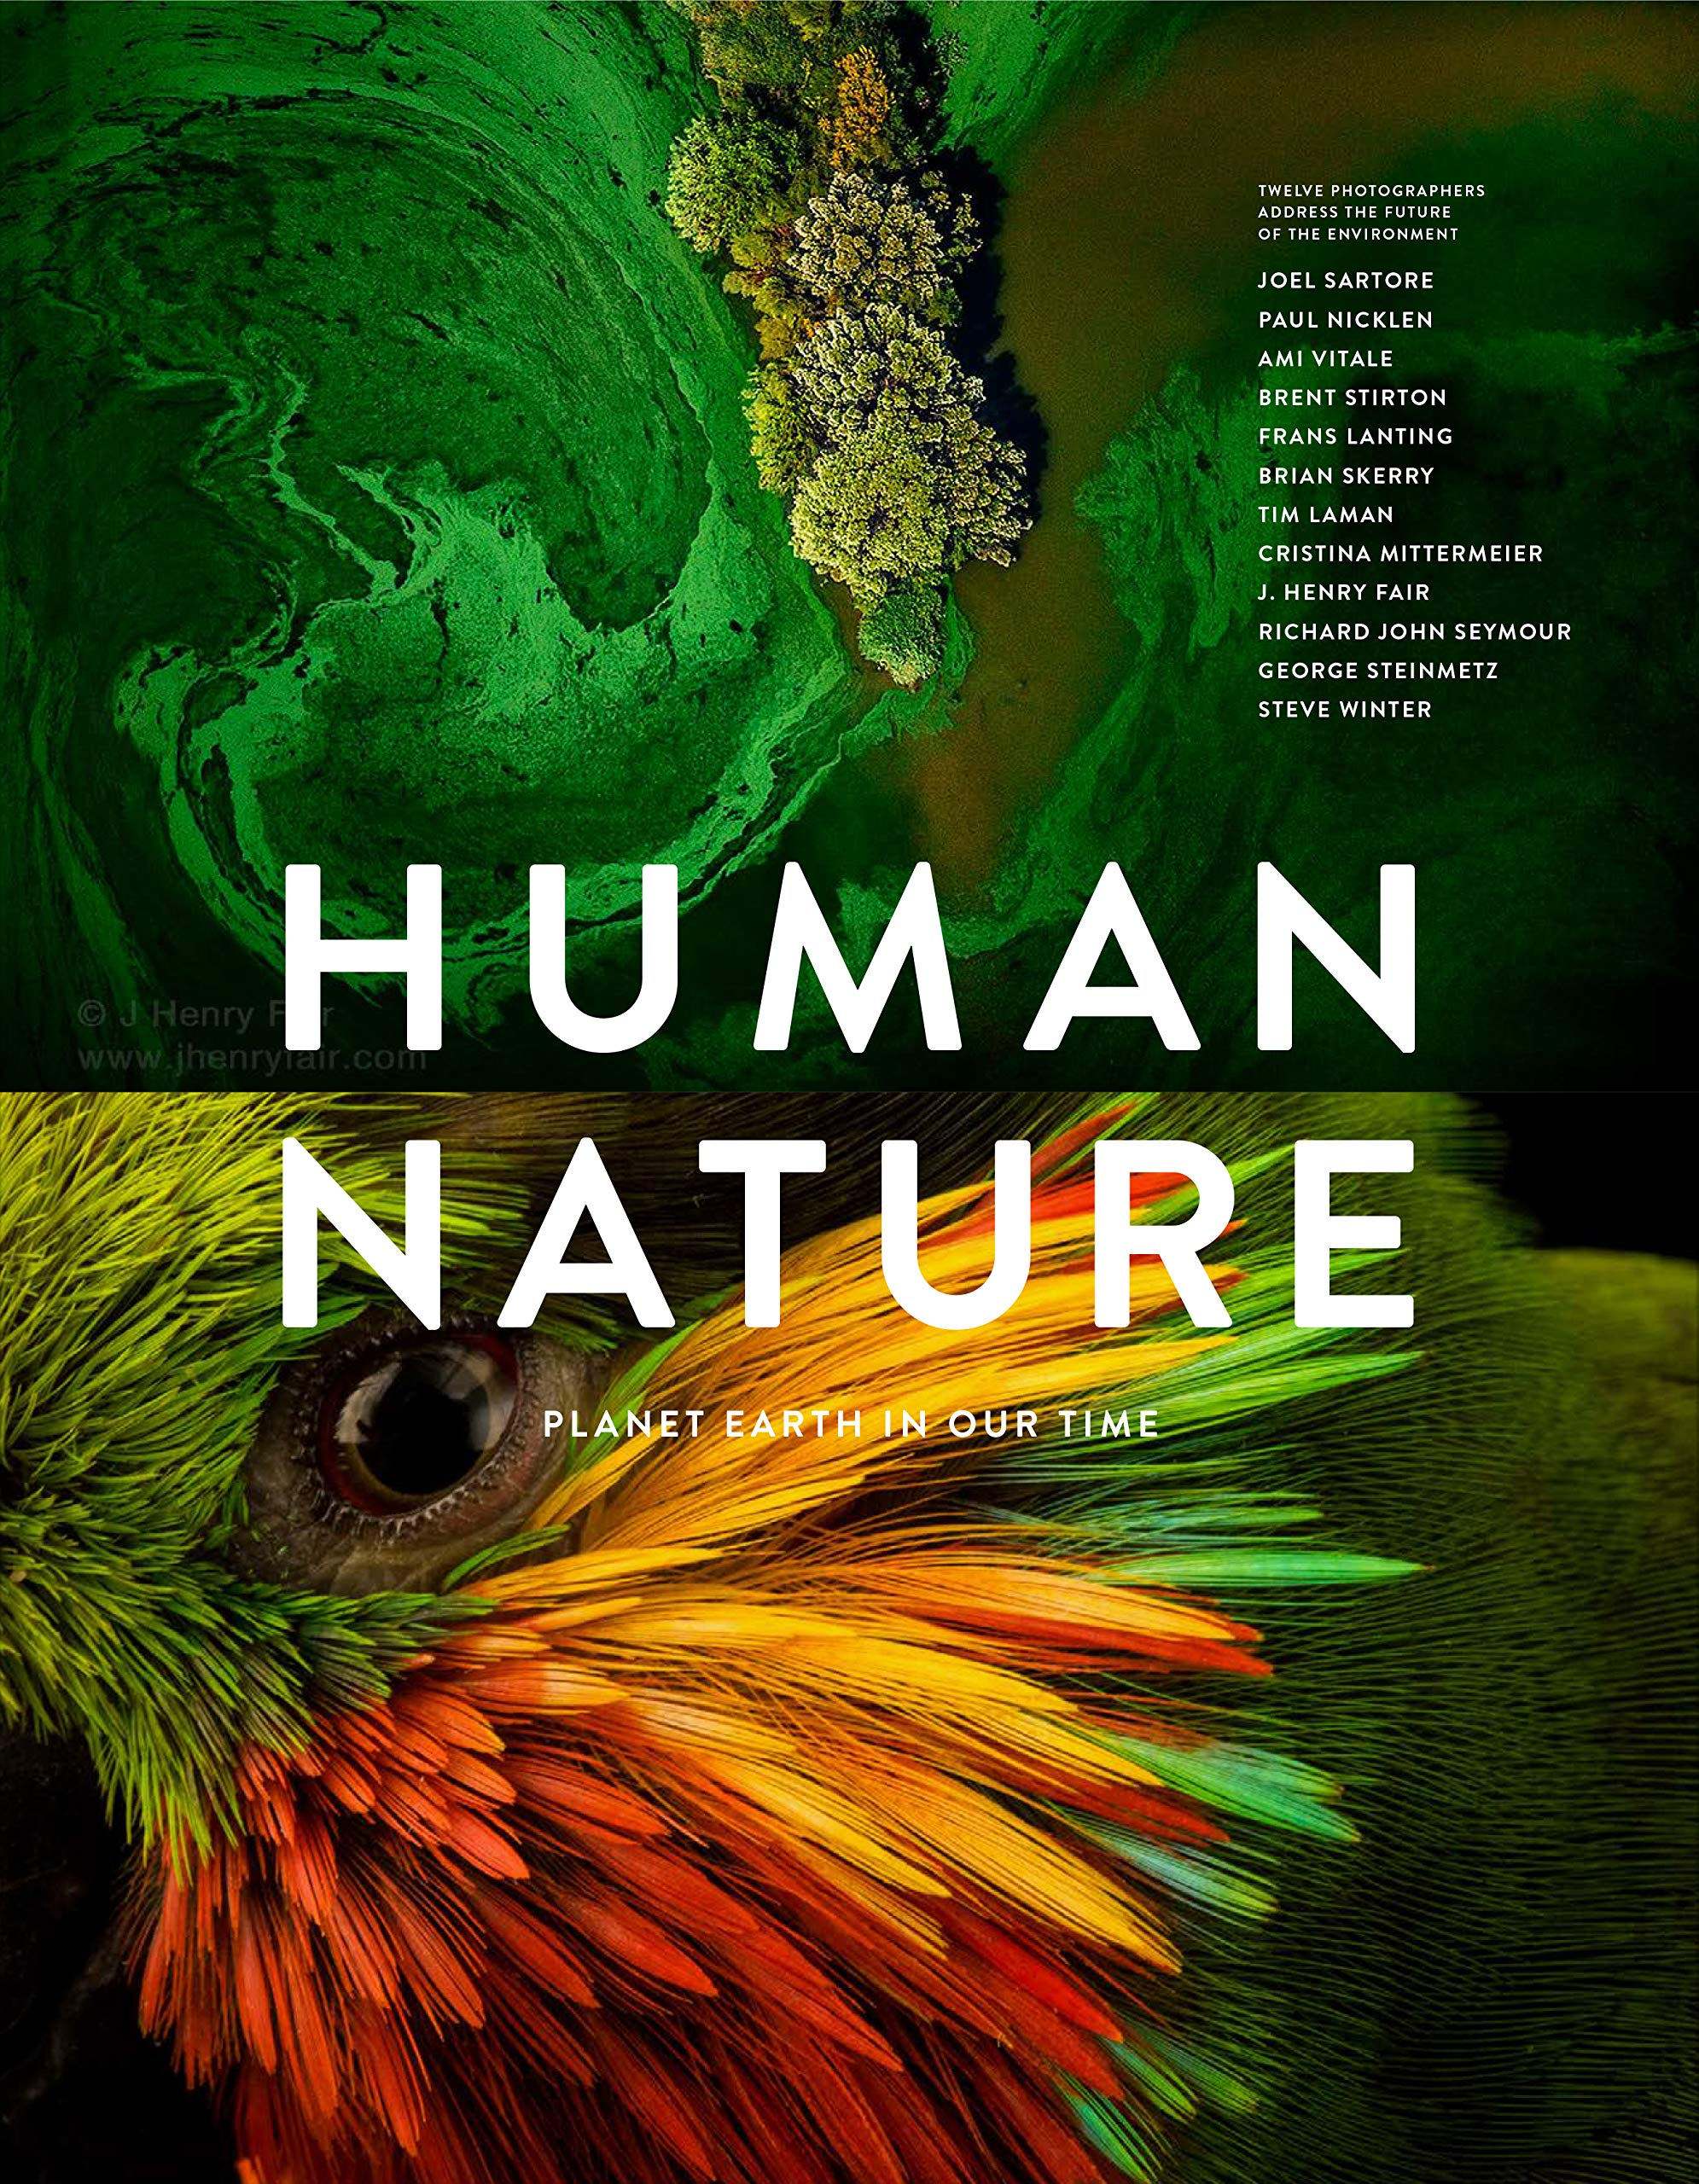 Human Nature: Planet Earth in Our Time